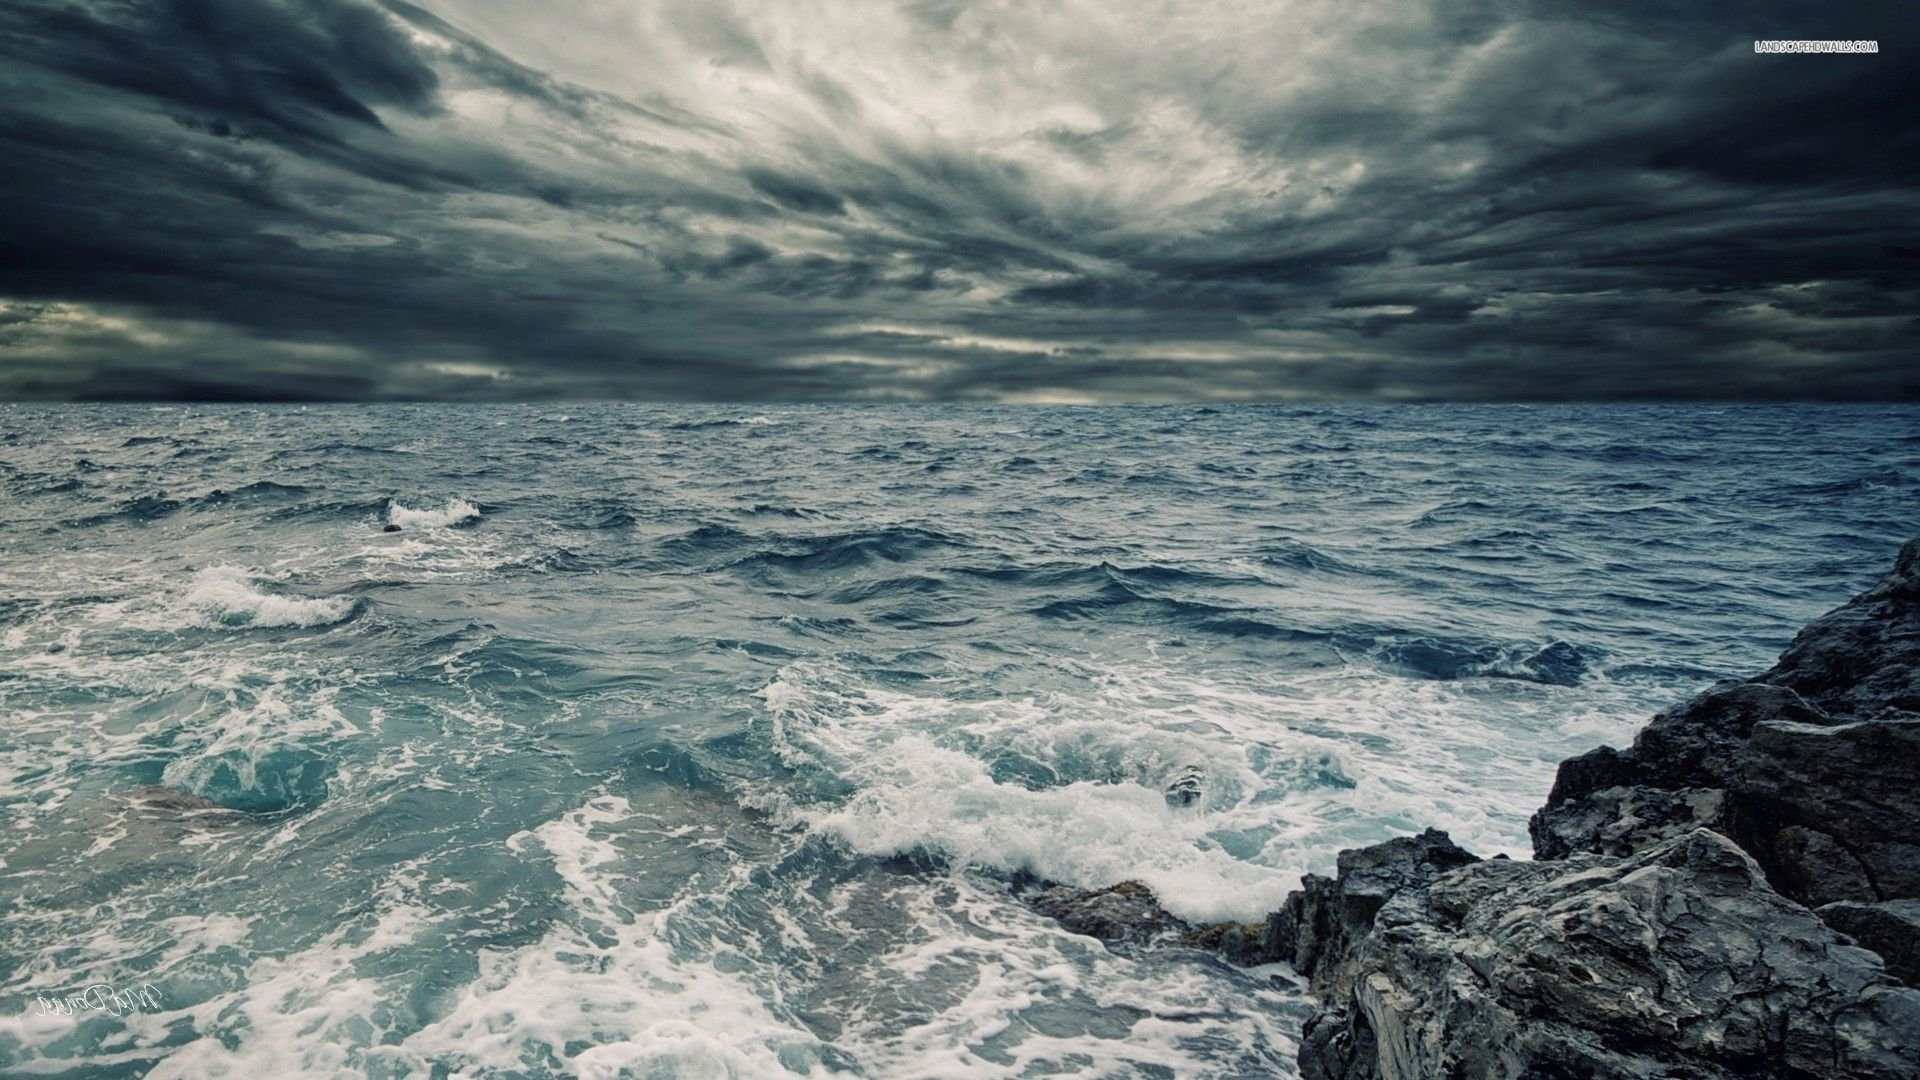 #TW 37 Stormy Ocean Wallpaper, Stormy Ocean Full HD ...